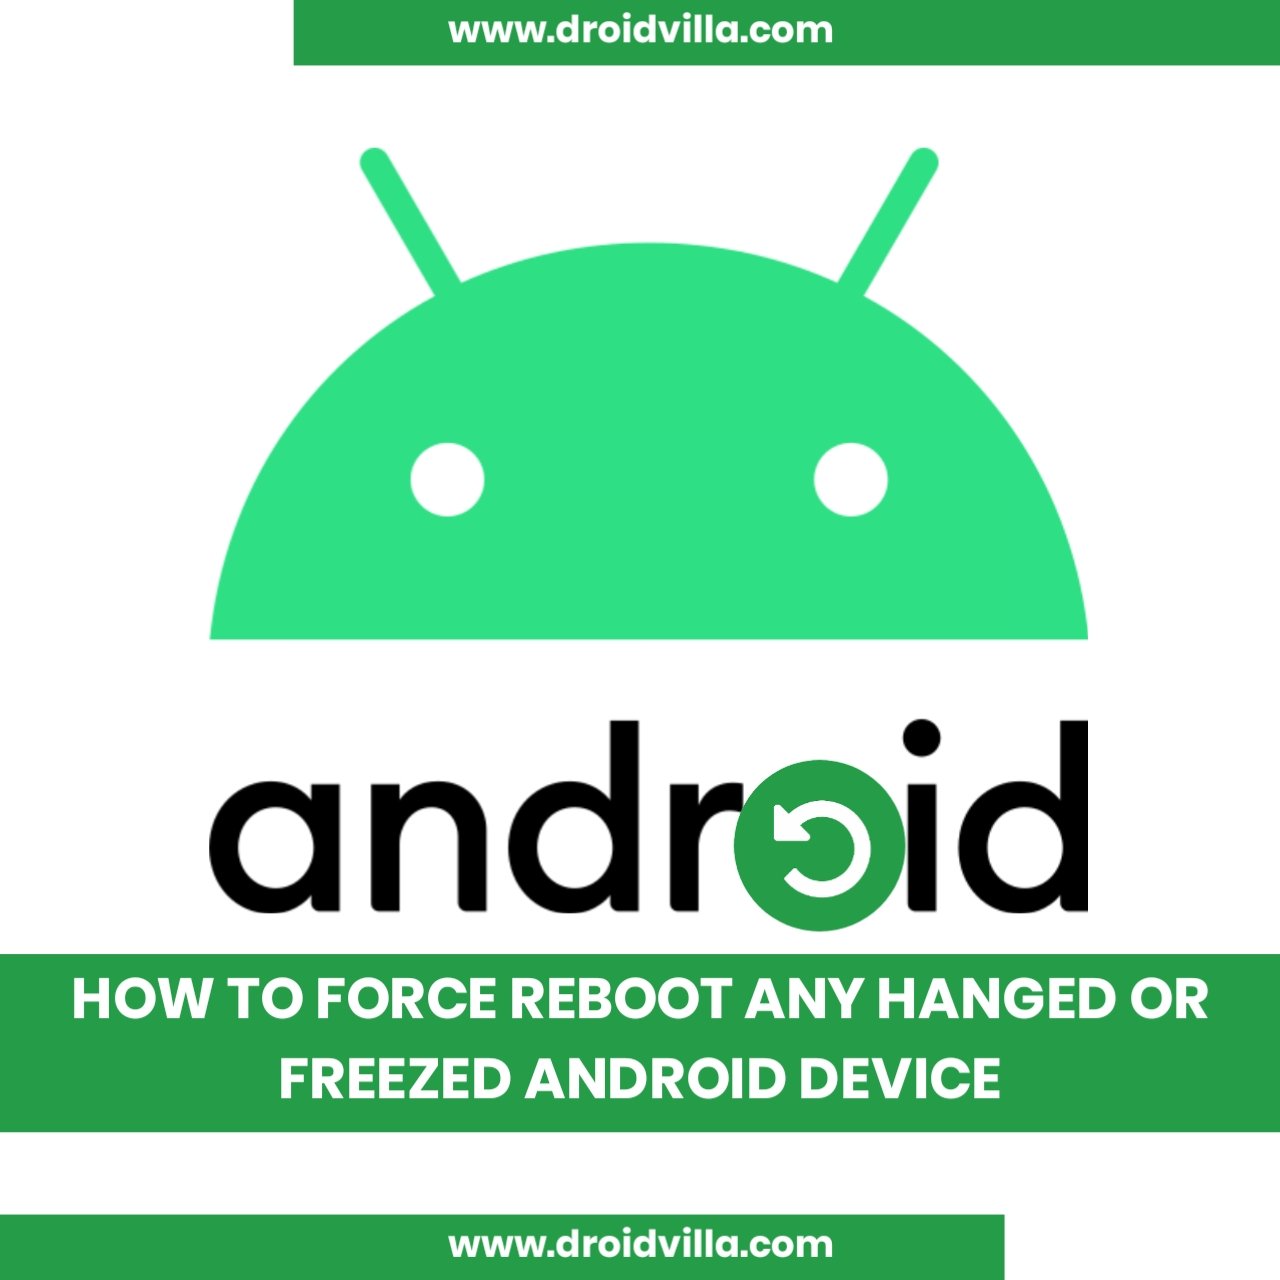 Reboot hanged or freezed Android device